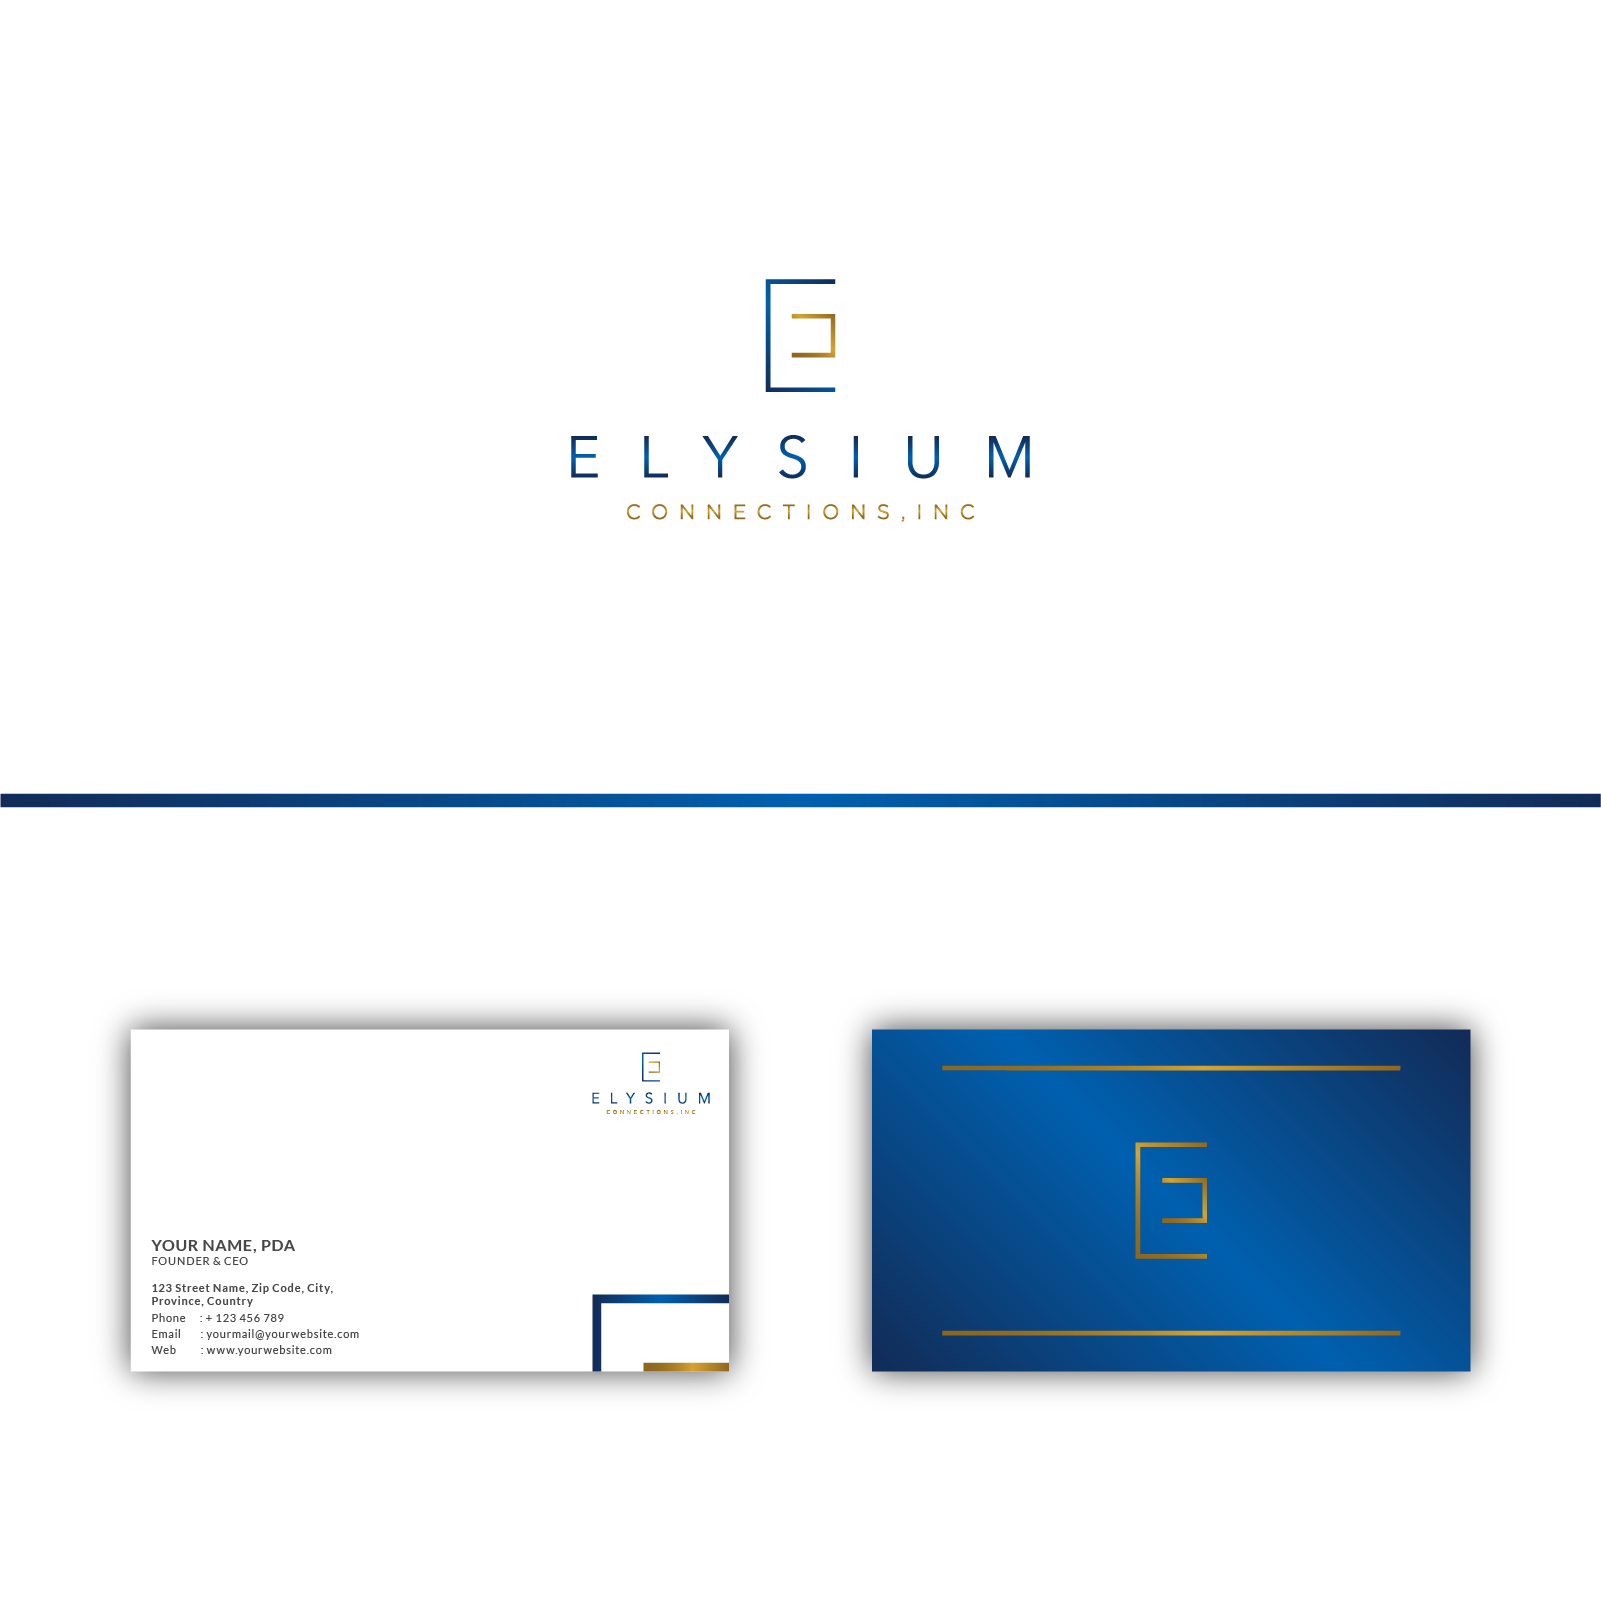 Elysium Connections - The Premier Consulting Firm that makes millionaries every year.  I bring Paradise Connections